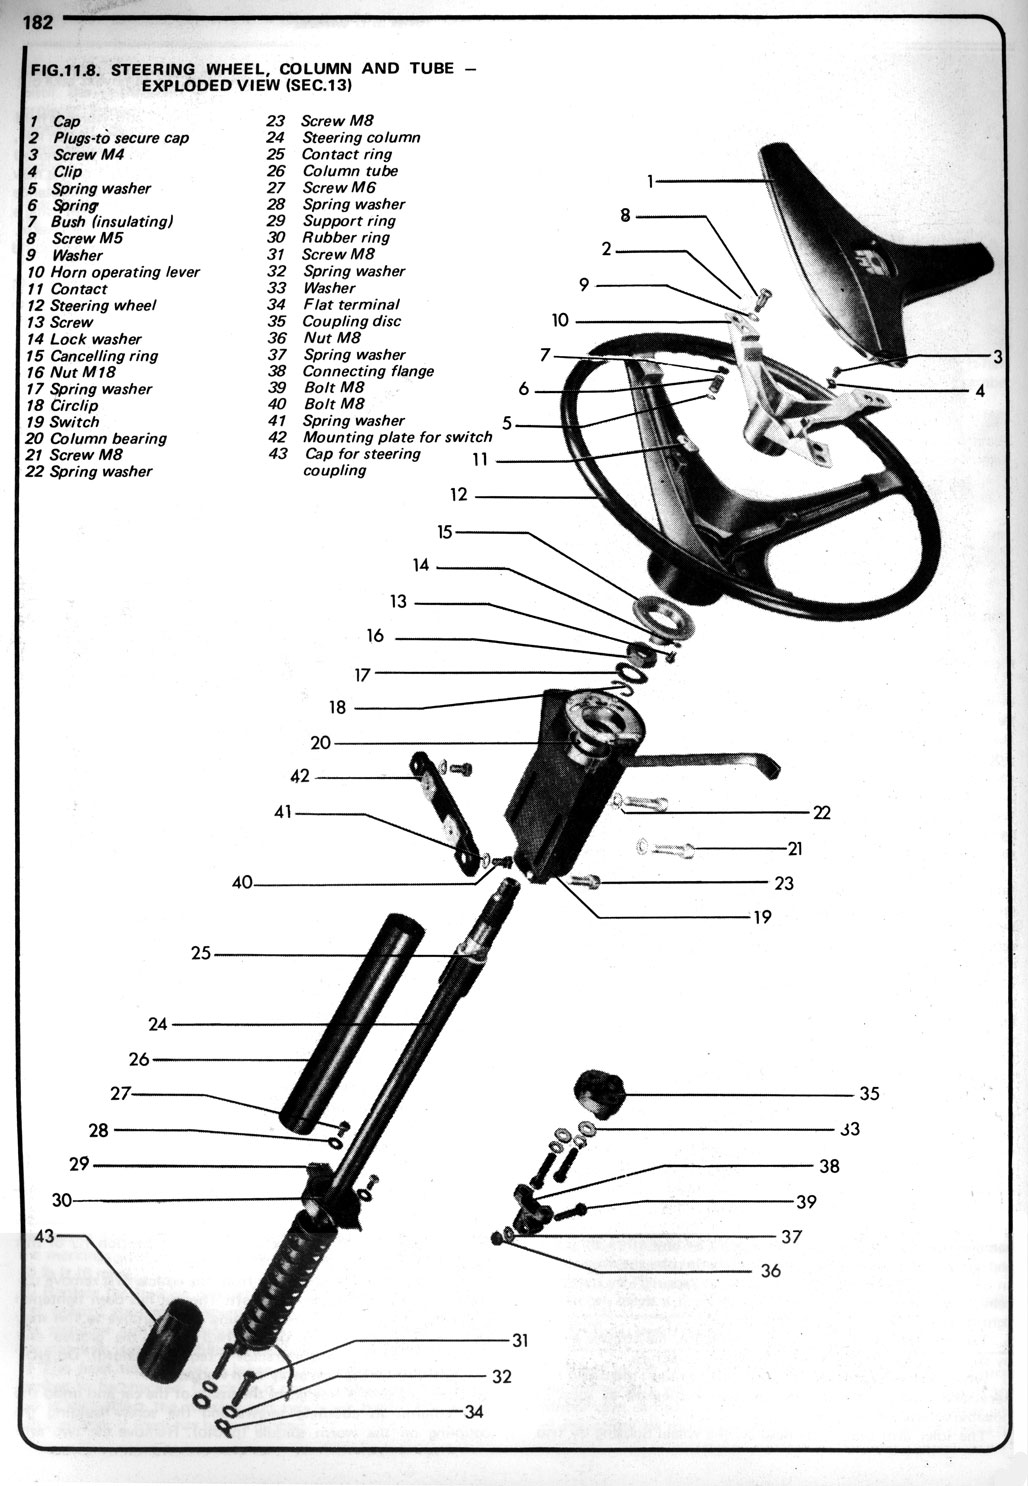 1972 Vw Steering Column Wiring Harness 38 Diagram Images 77 Van Wheel 1 Thesamba Com 411 412 View Topic Type 4 Wheels